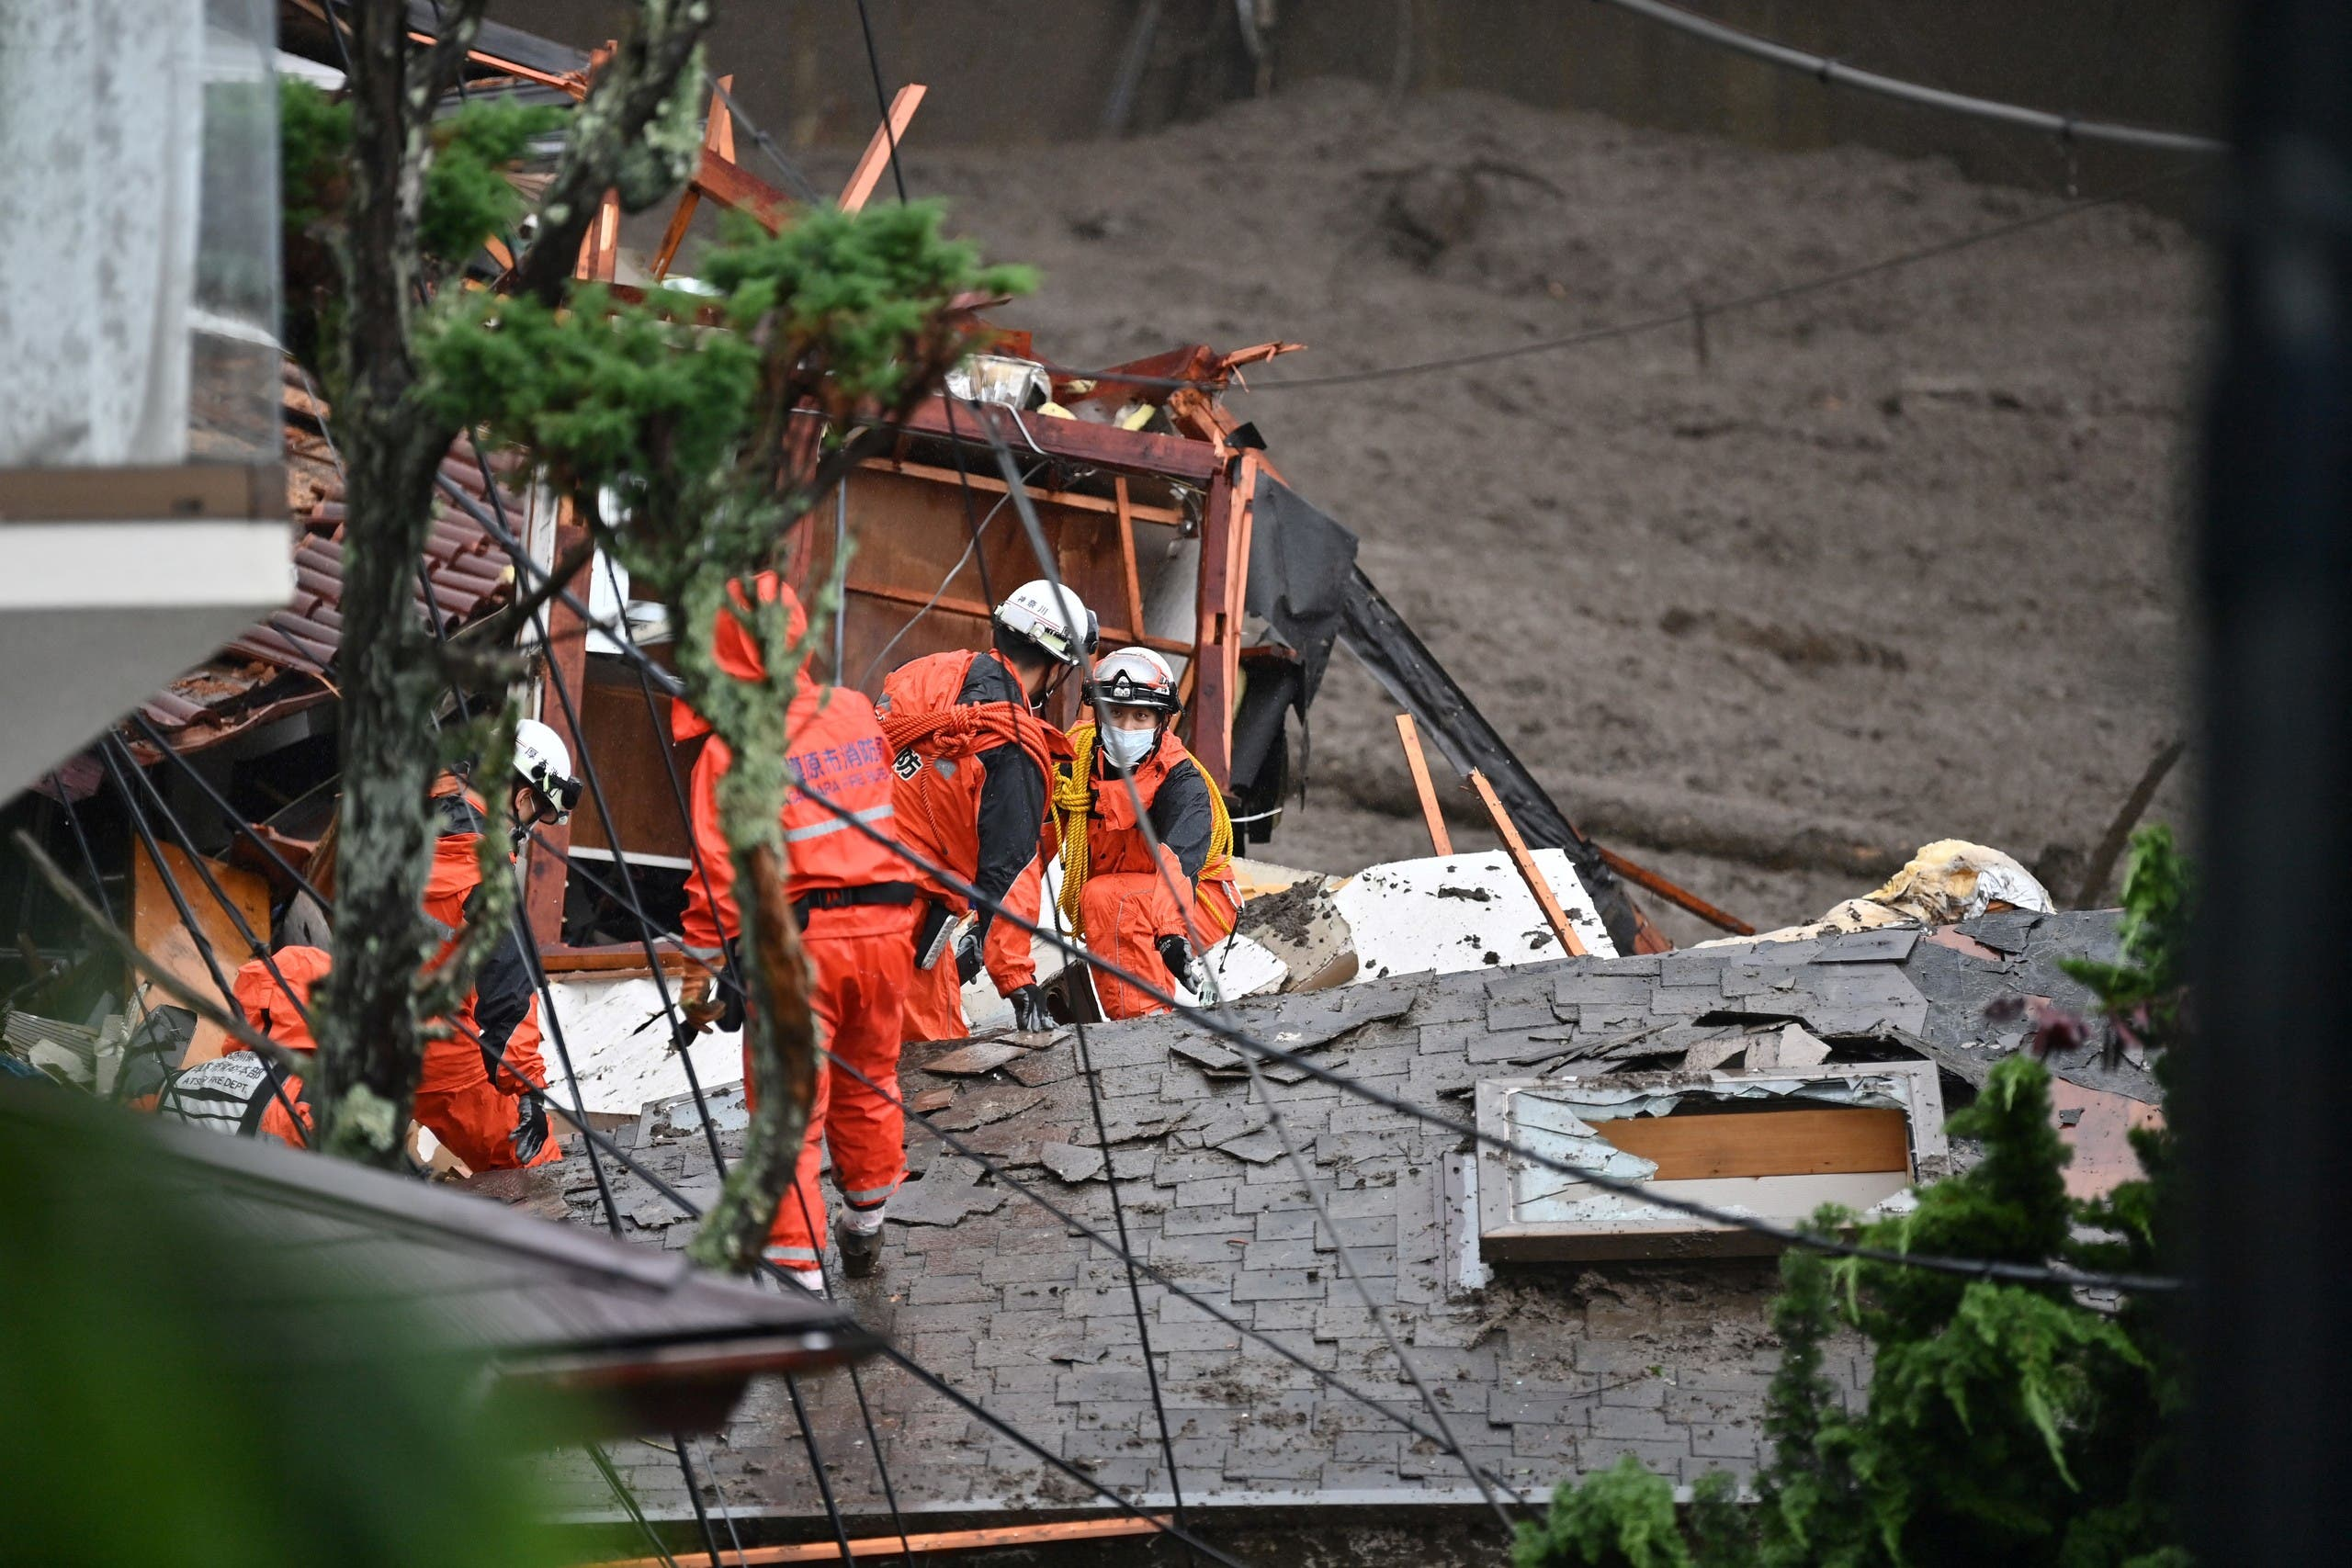 Firefighters search for missing people at the scene of a landslide following days of heavy rain in Atami in Shizuoka Prefecture on July 4, 2021. A huge landslide swept away homes and left 19 people missing at a popular resort town in central Japan on July 3 after days of heavy rain, local officials said.